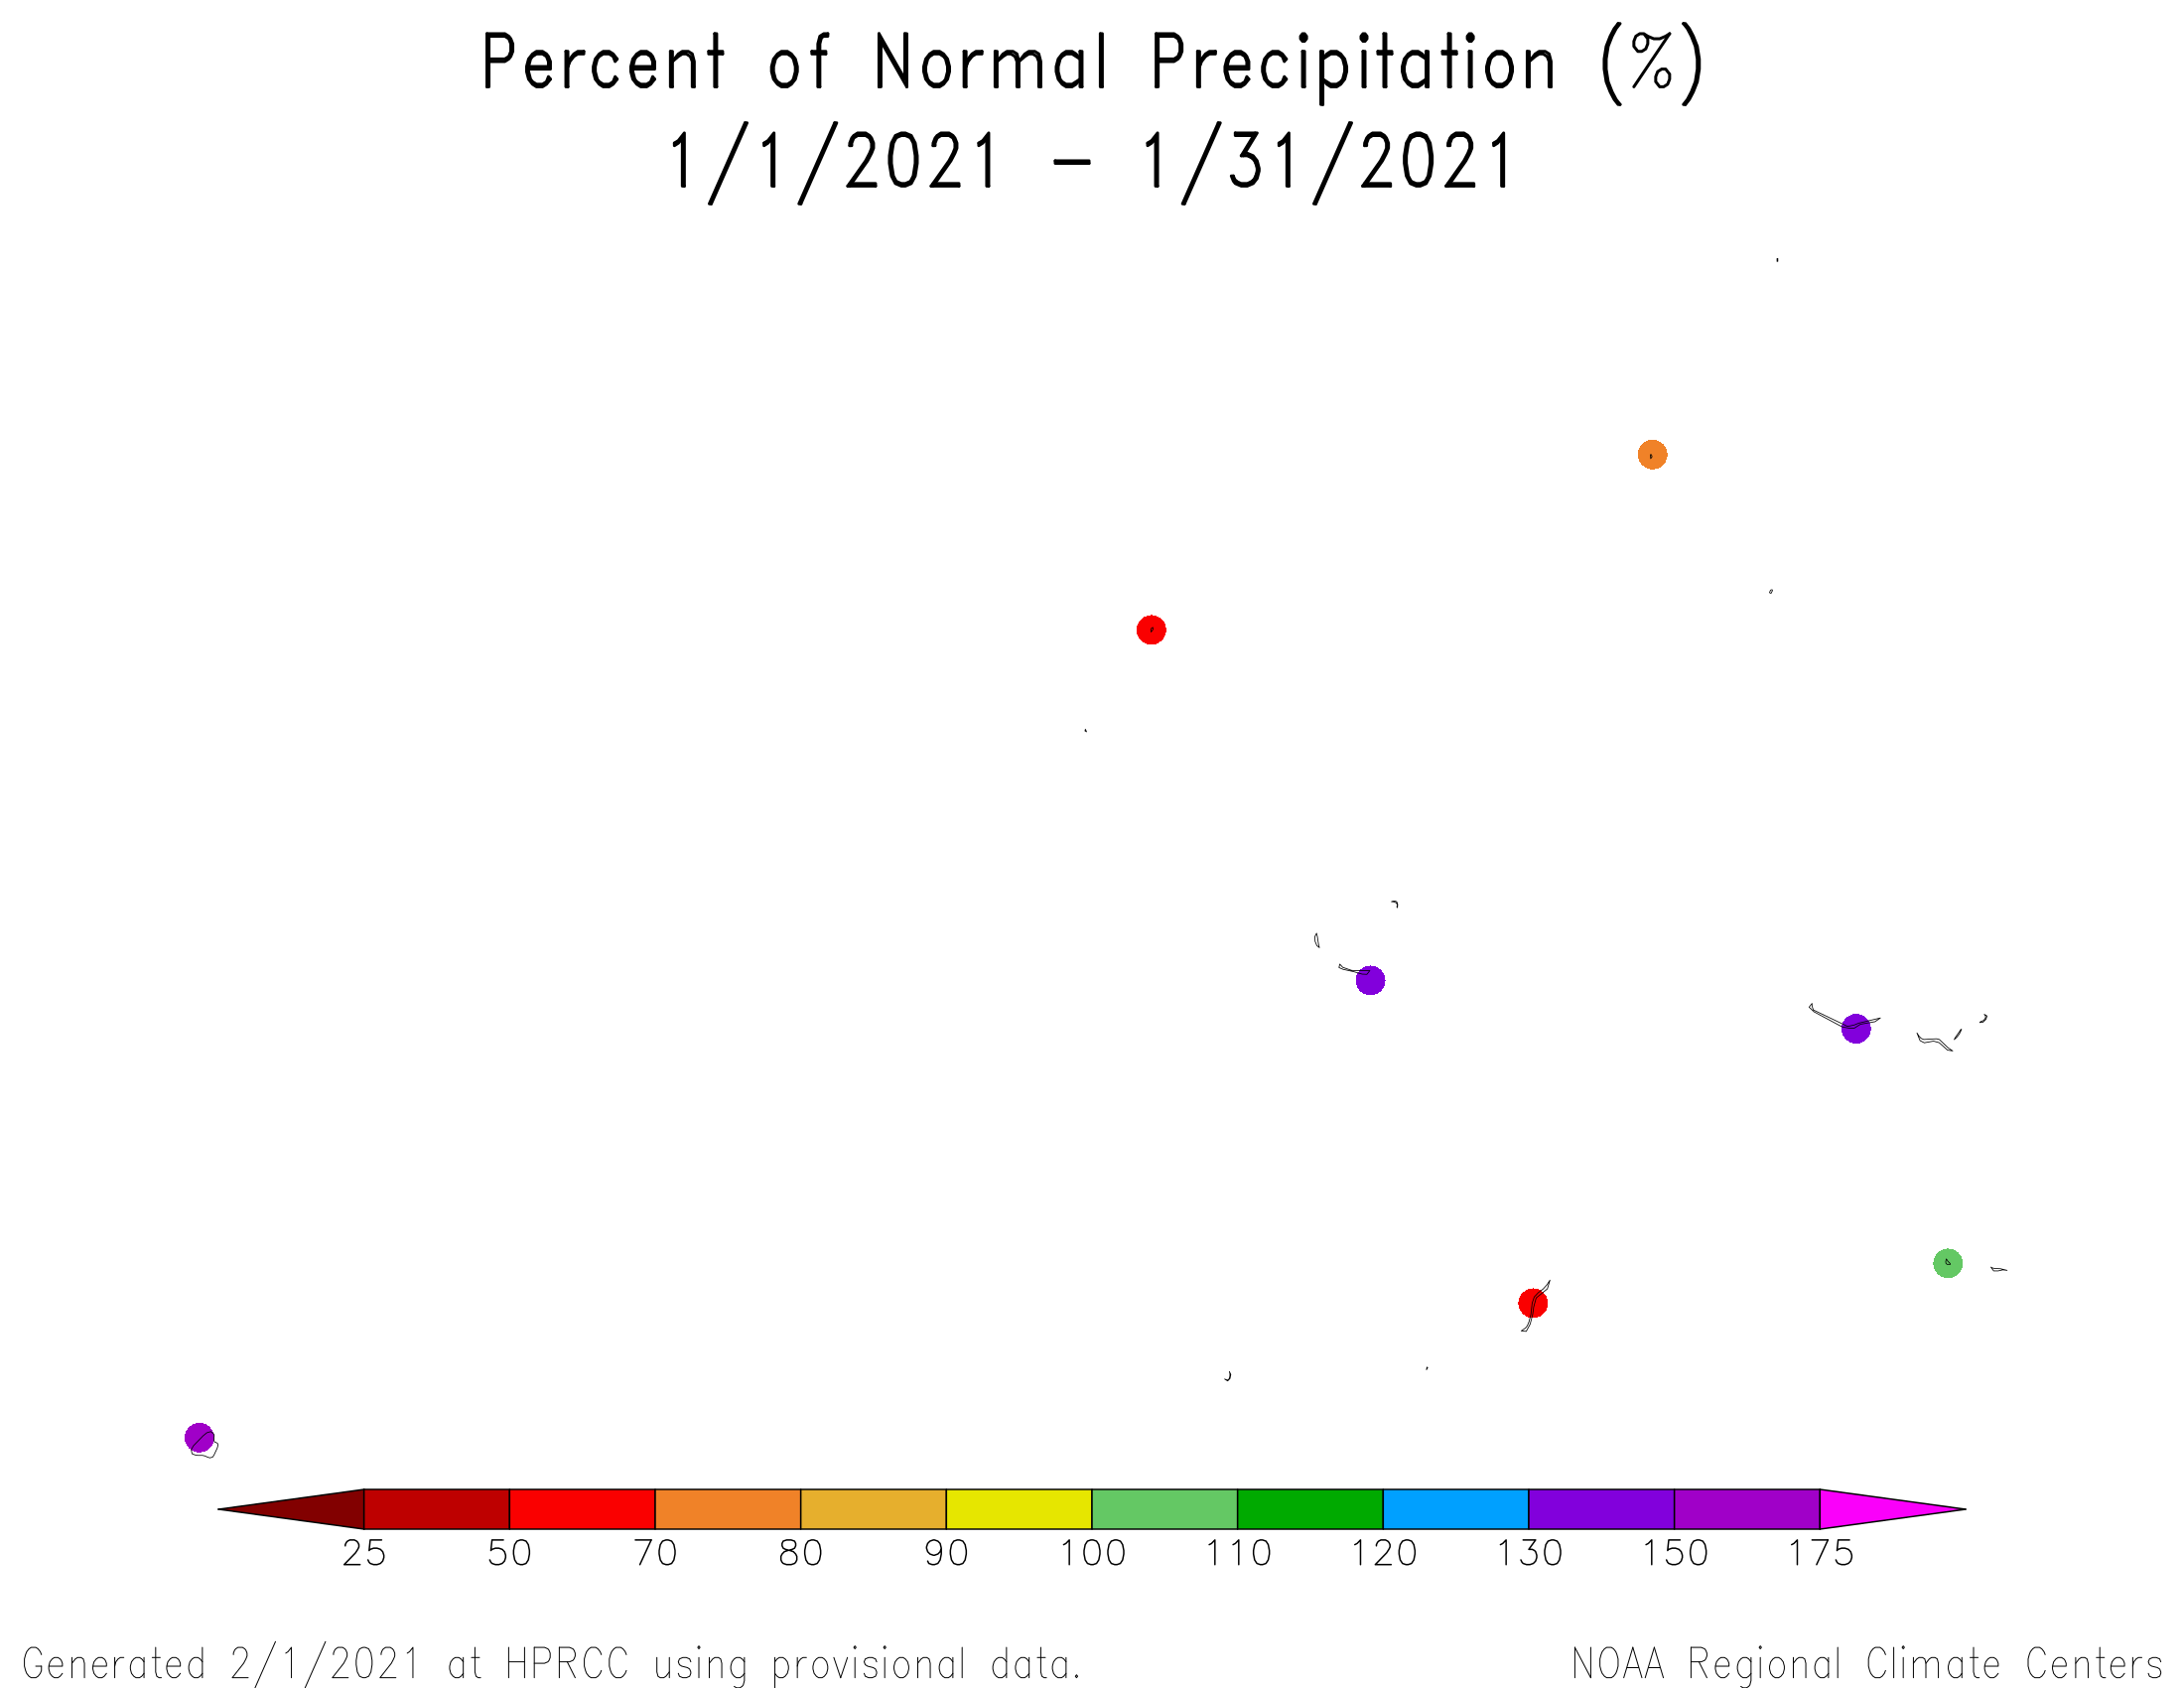 1-month Percent of Normal Precipitation for the Marshalls